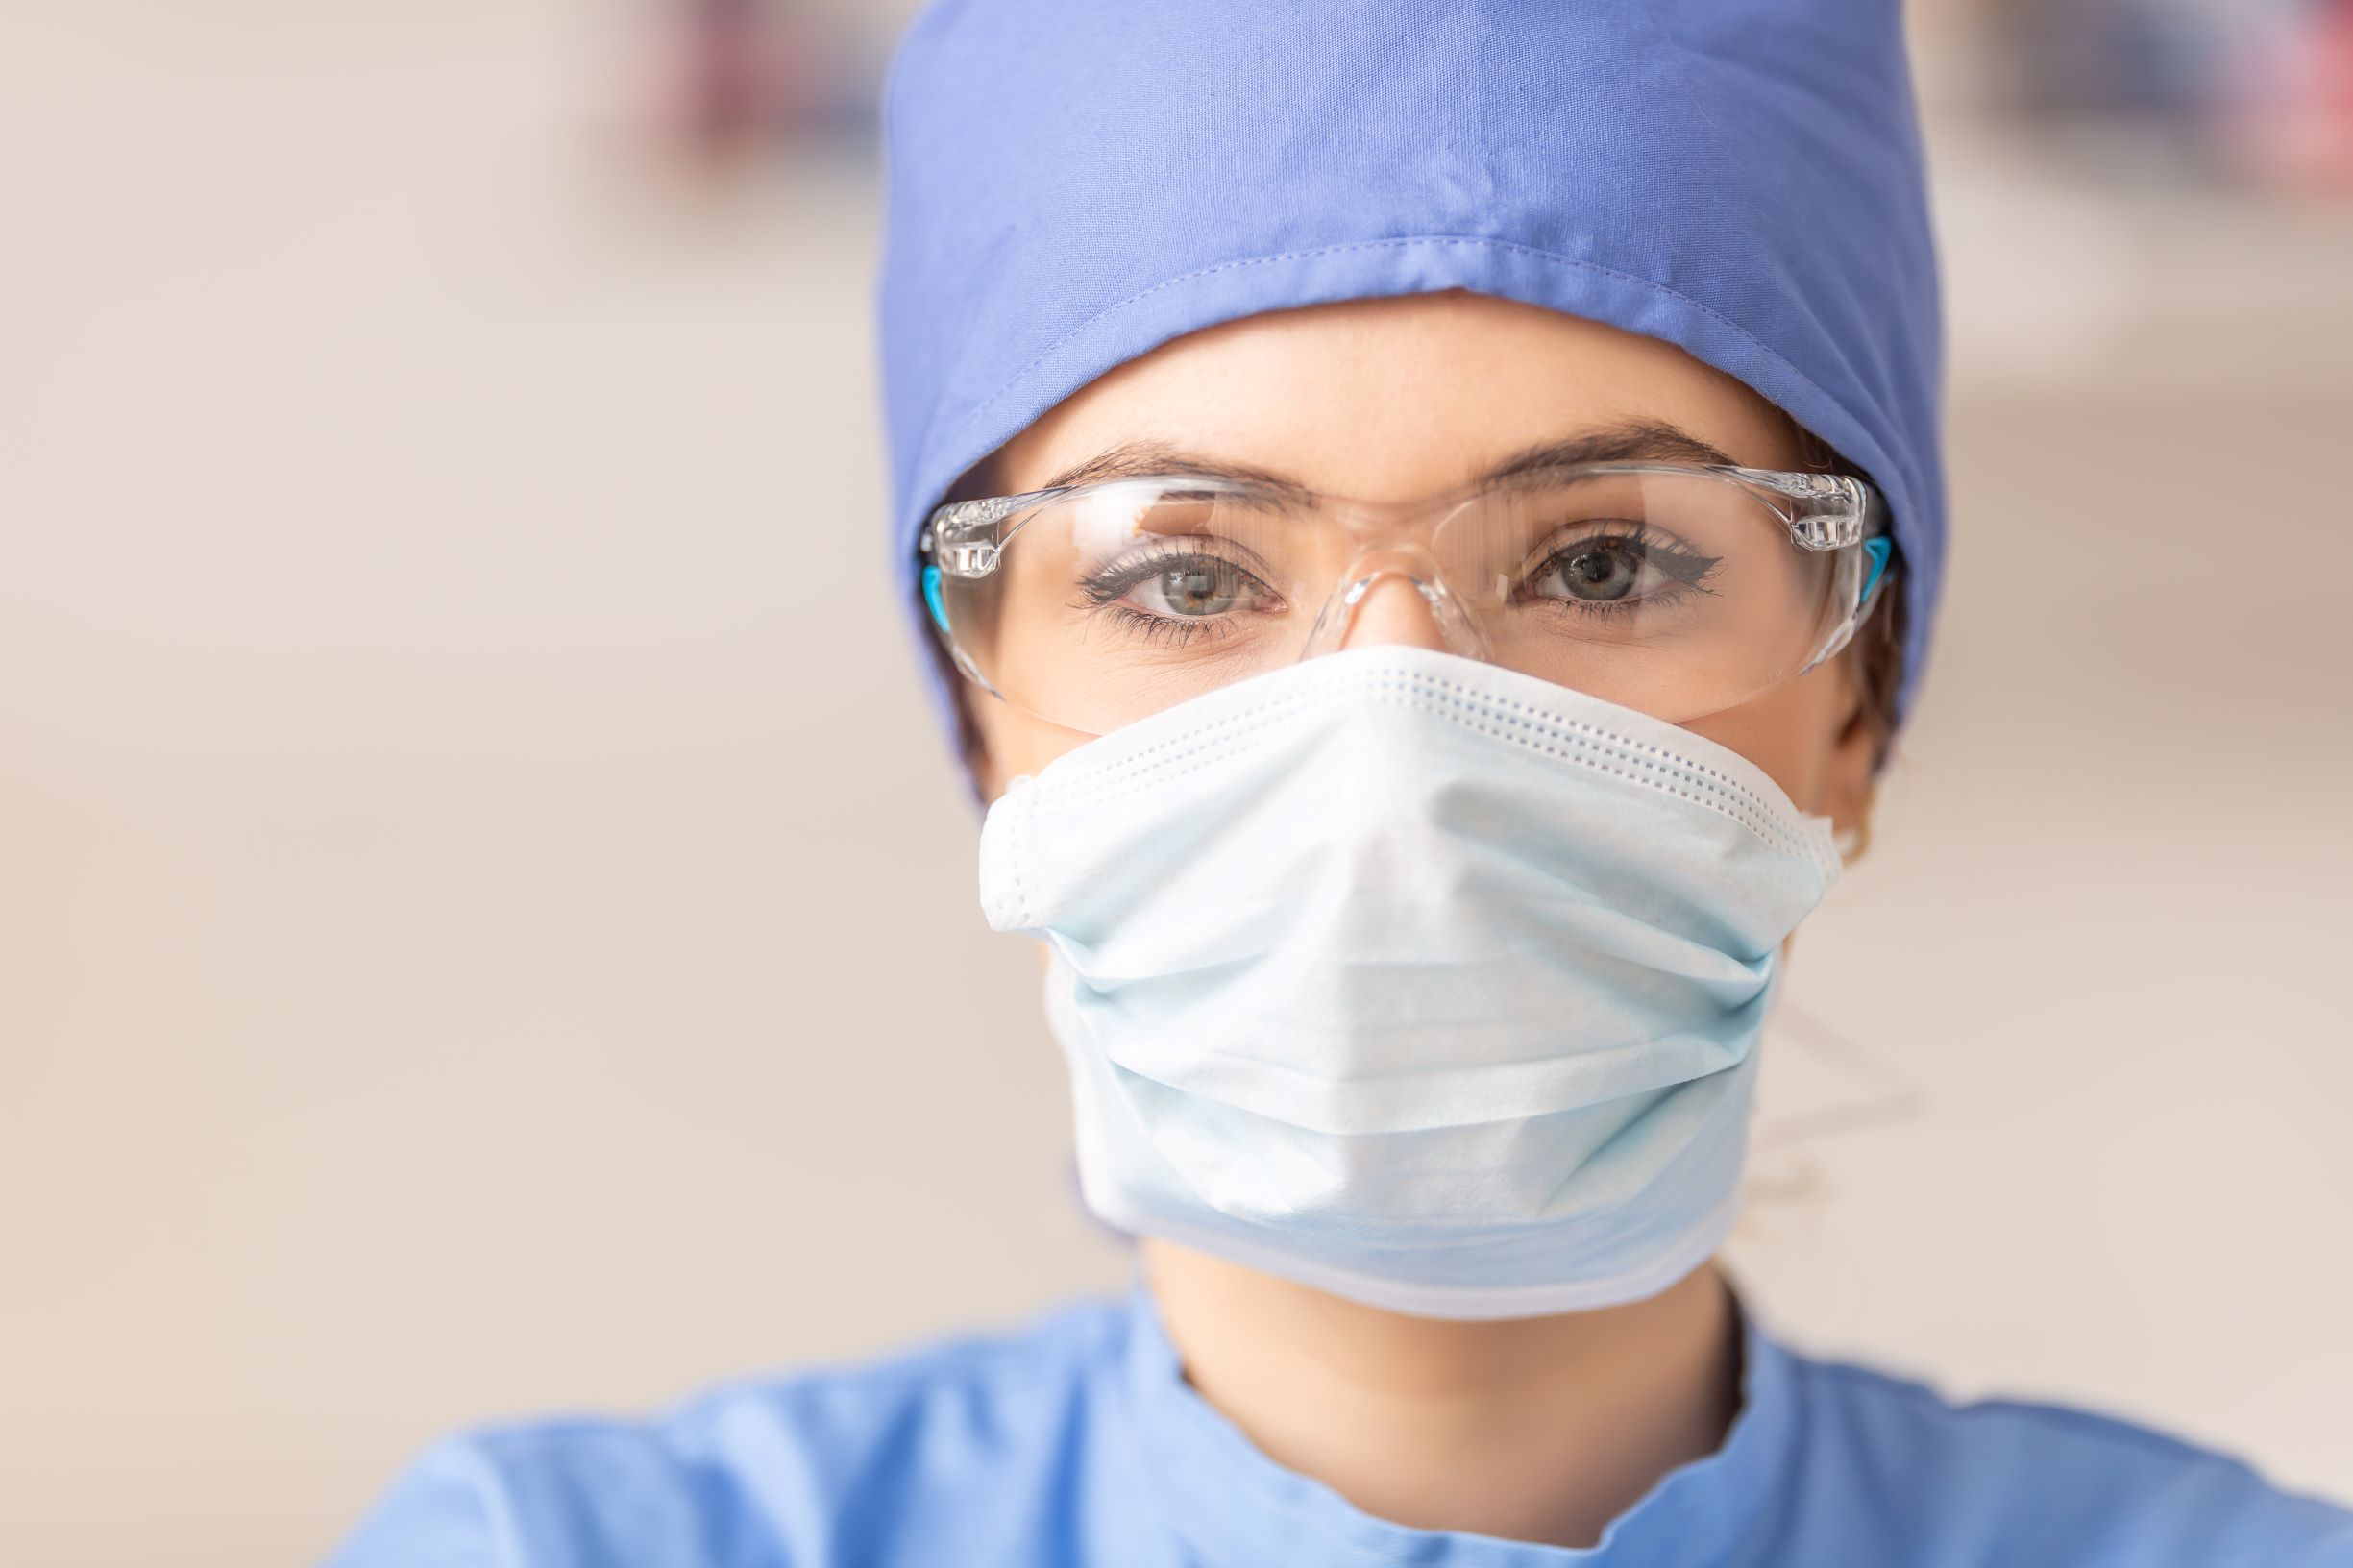 nurse portrait crop